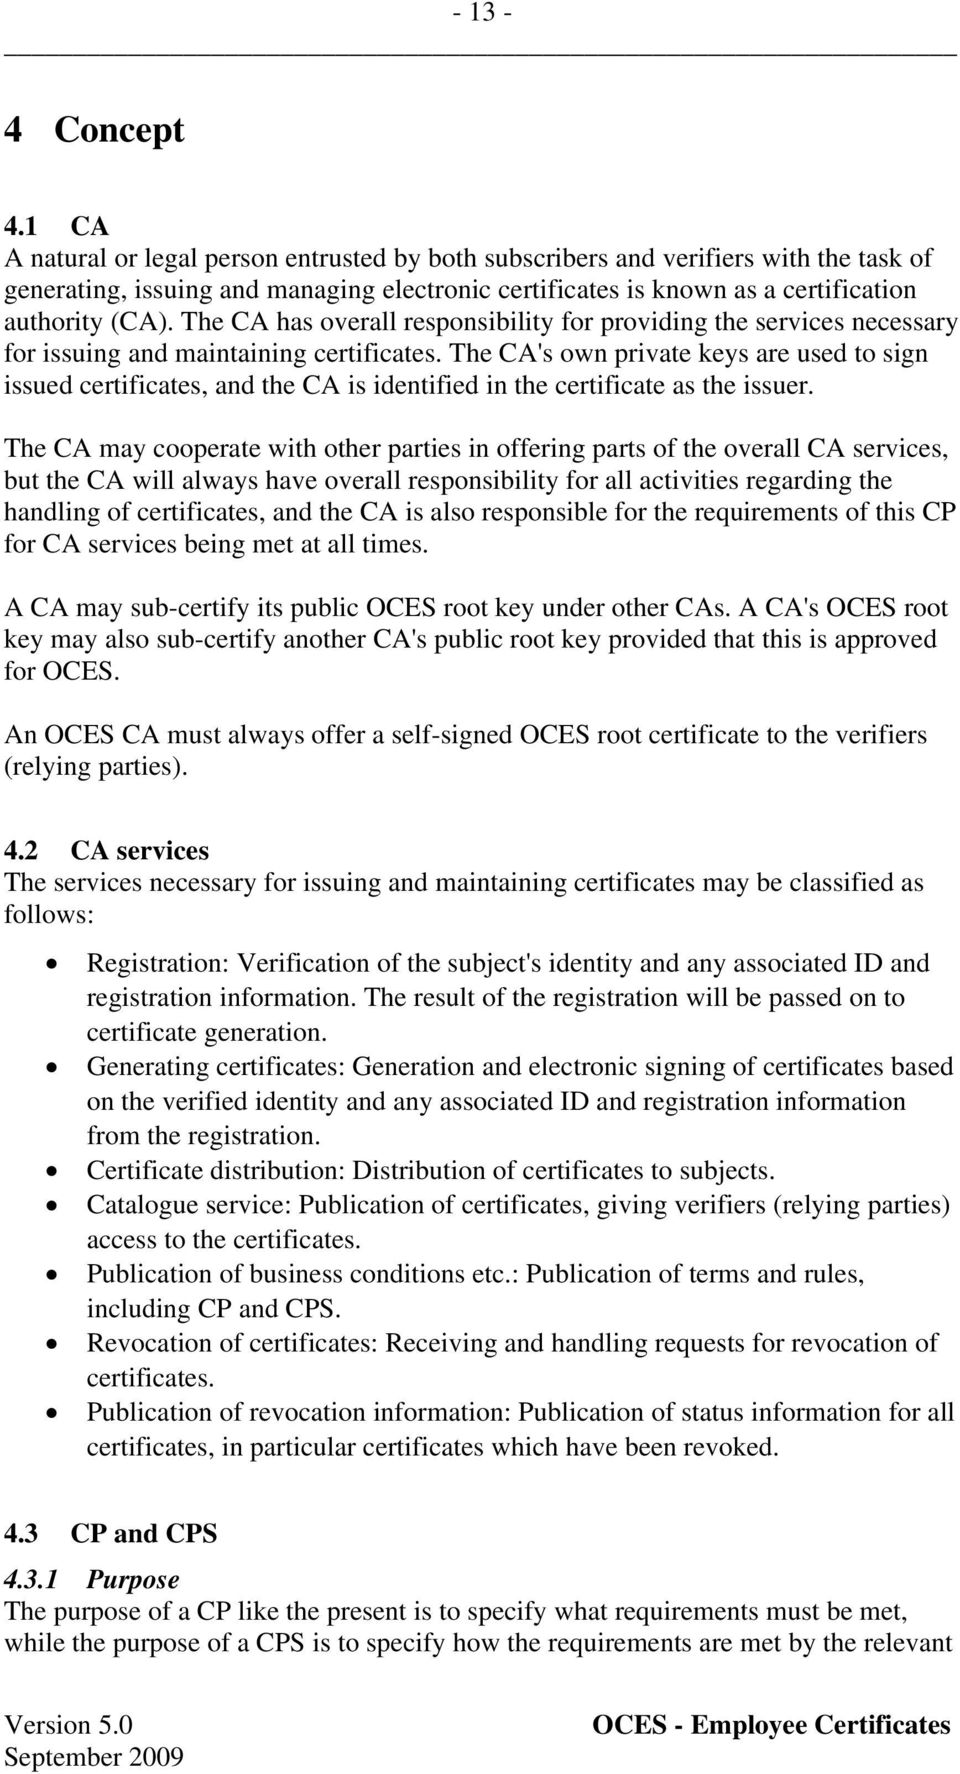 The CA has overall responsibility for providing the services necessary for issuing and maintaining certificates.